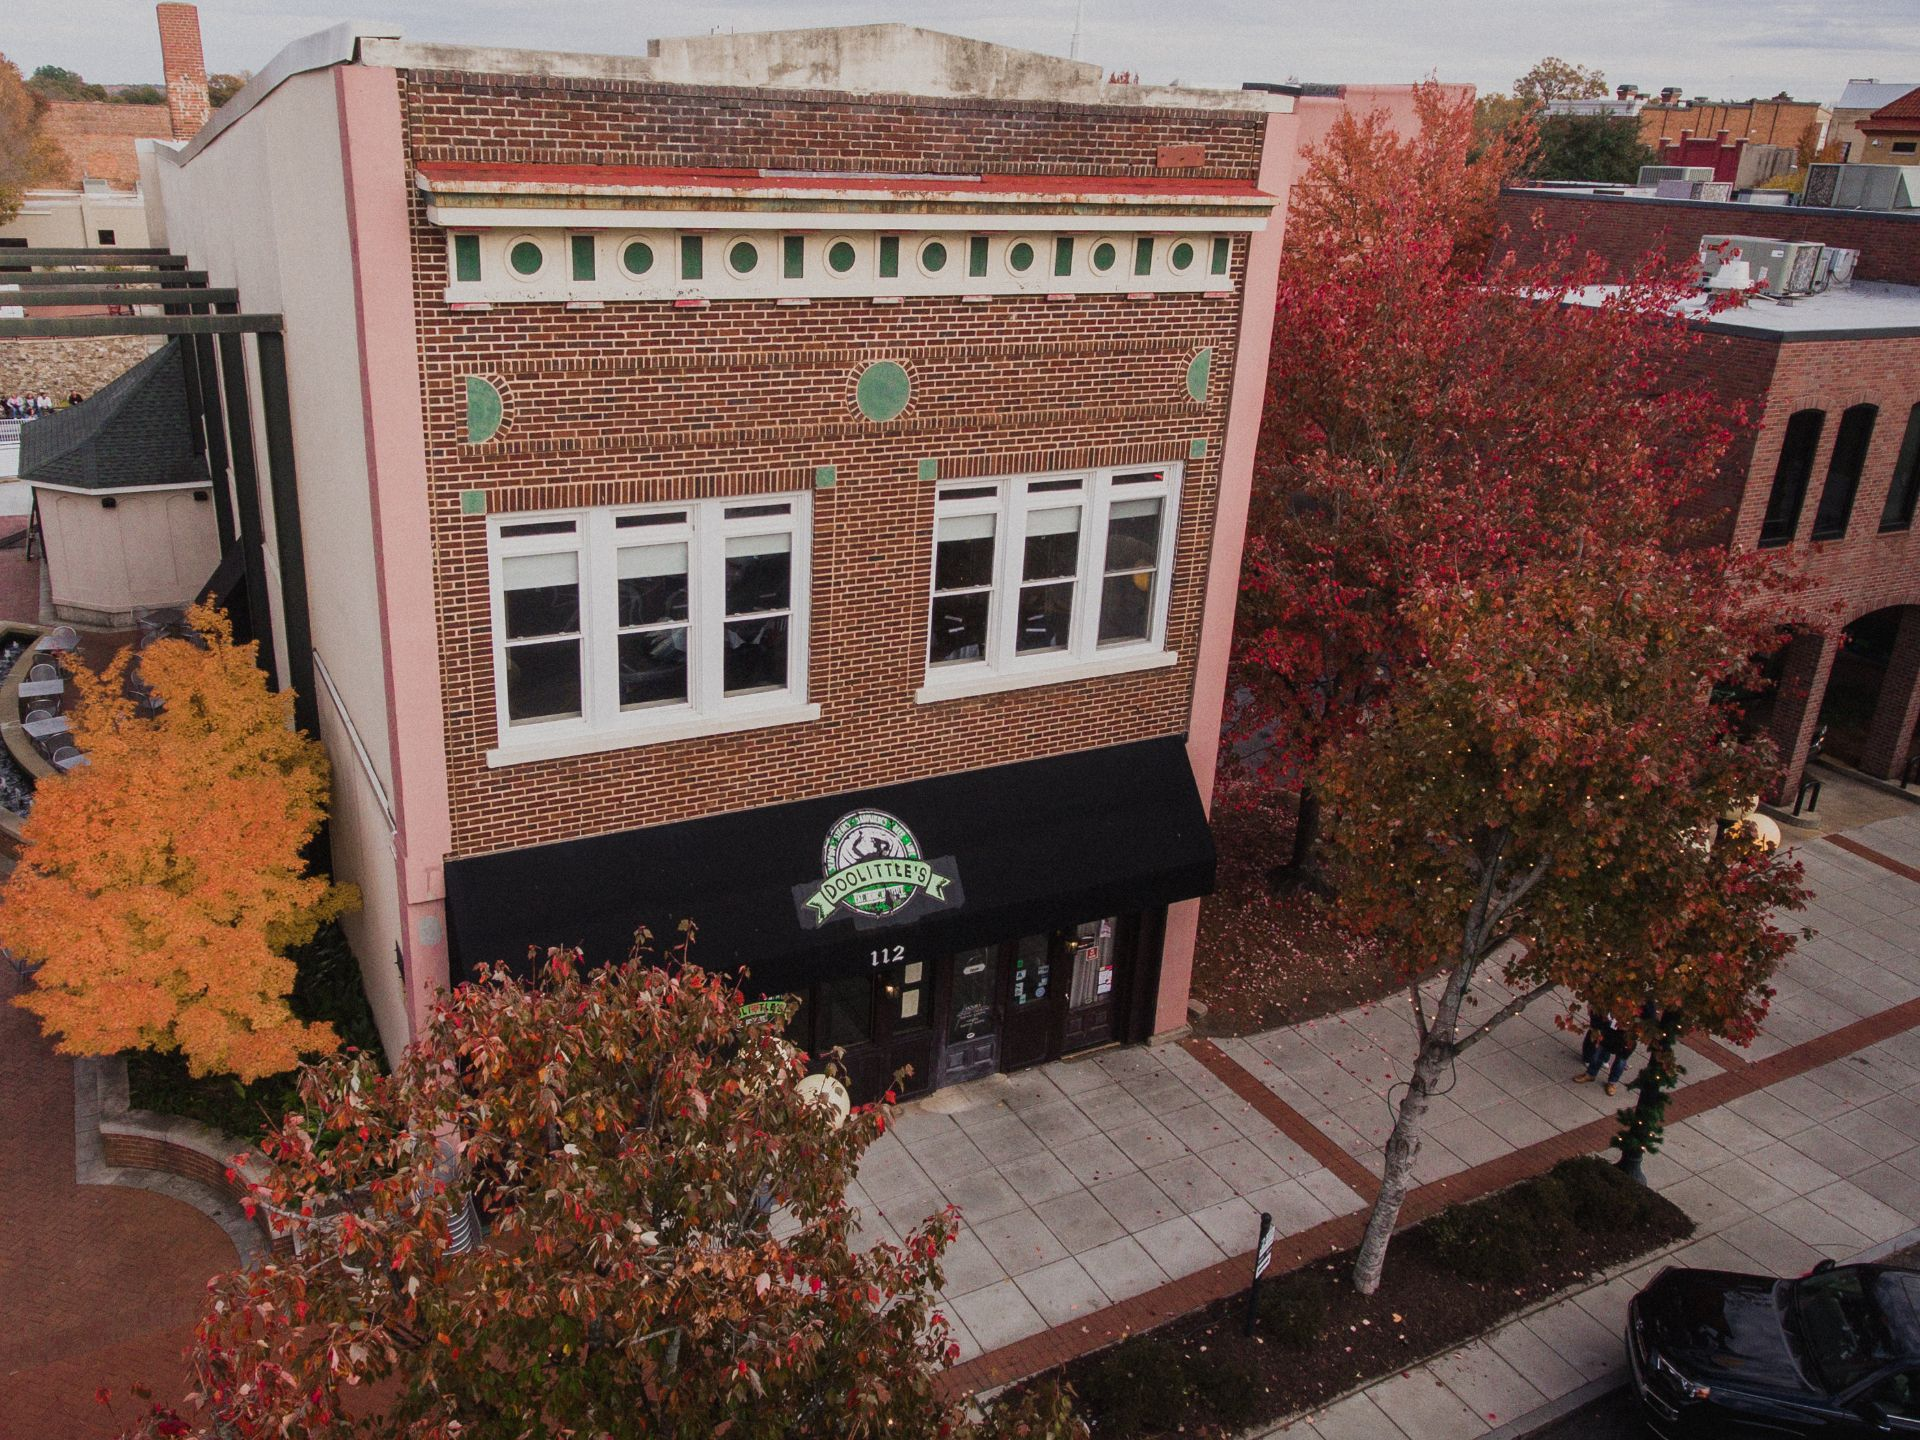 Aerial view of the exterior brick building of Doolittles